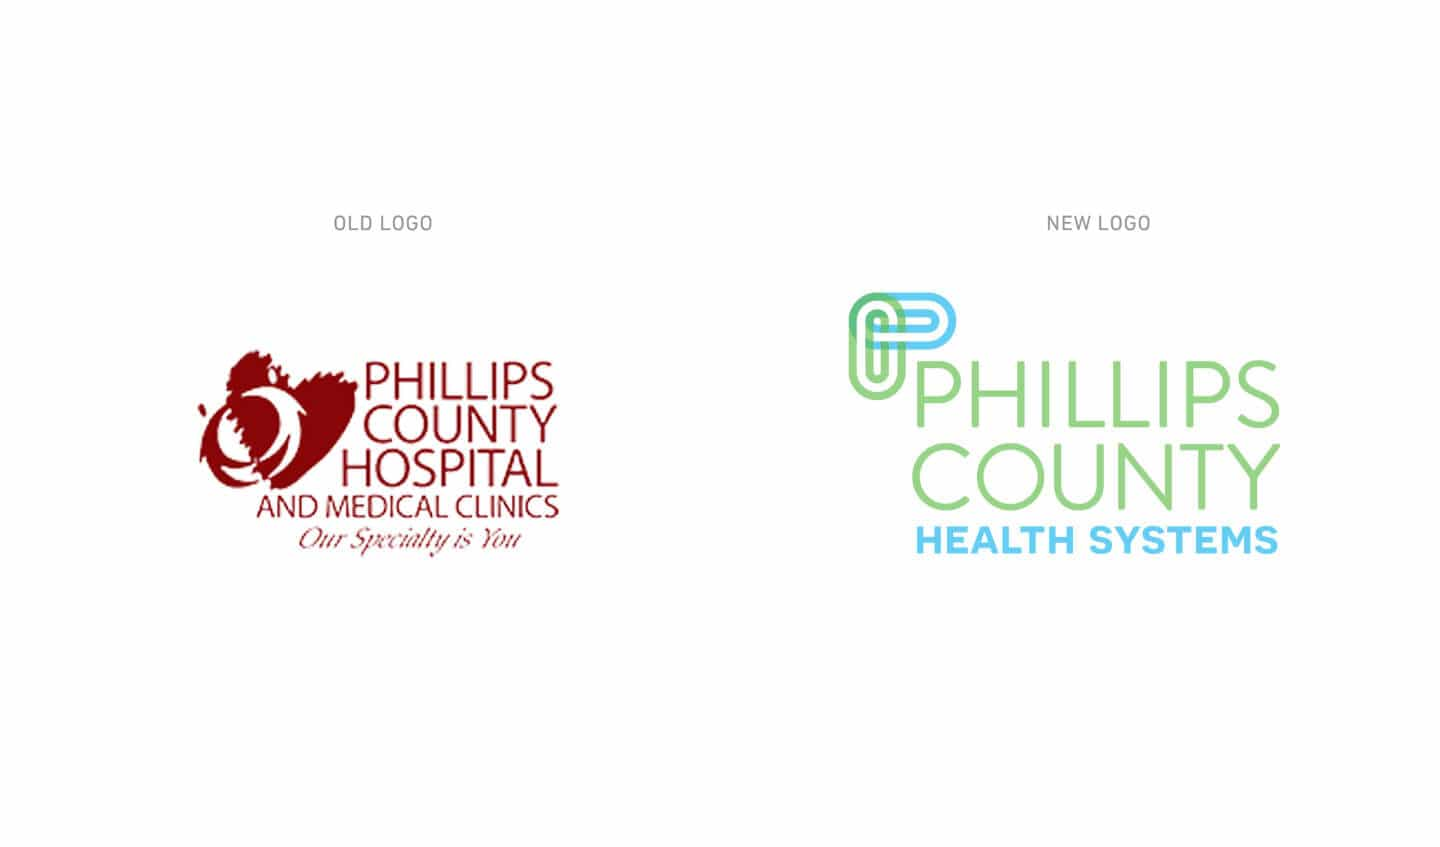 Phillips County Health Systems old versus new logo